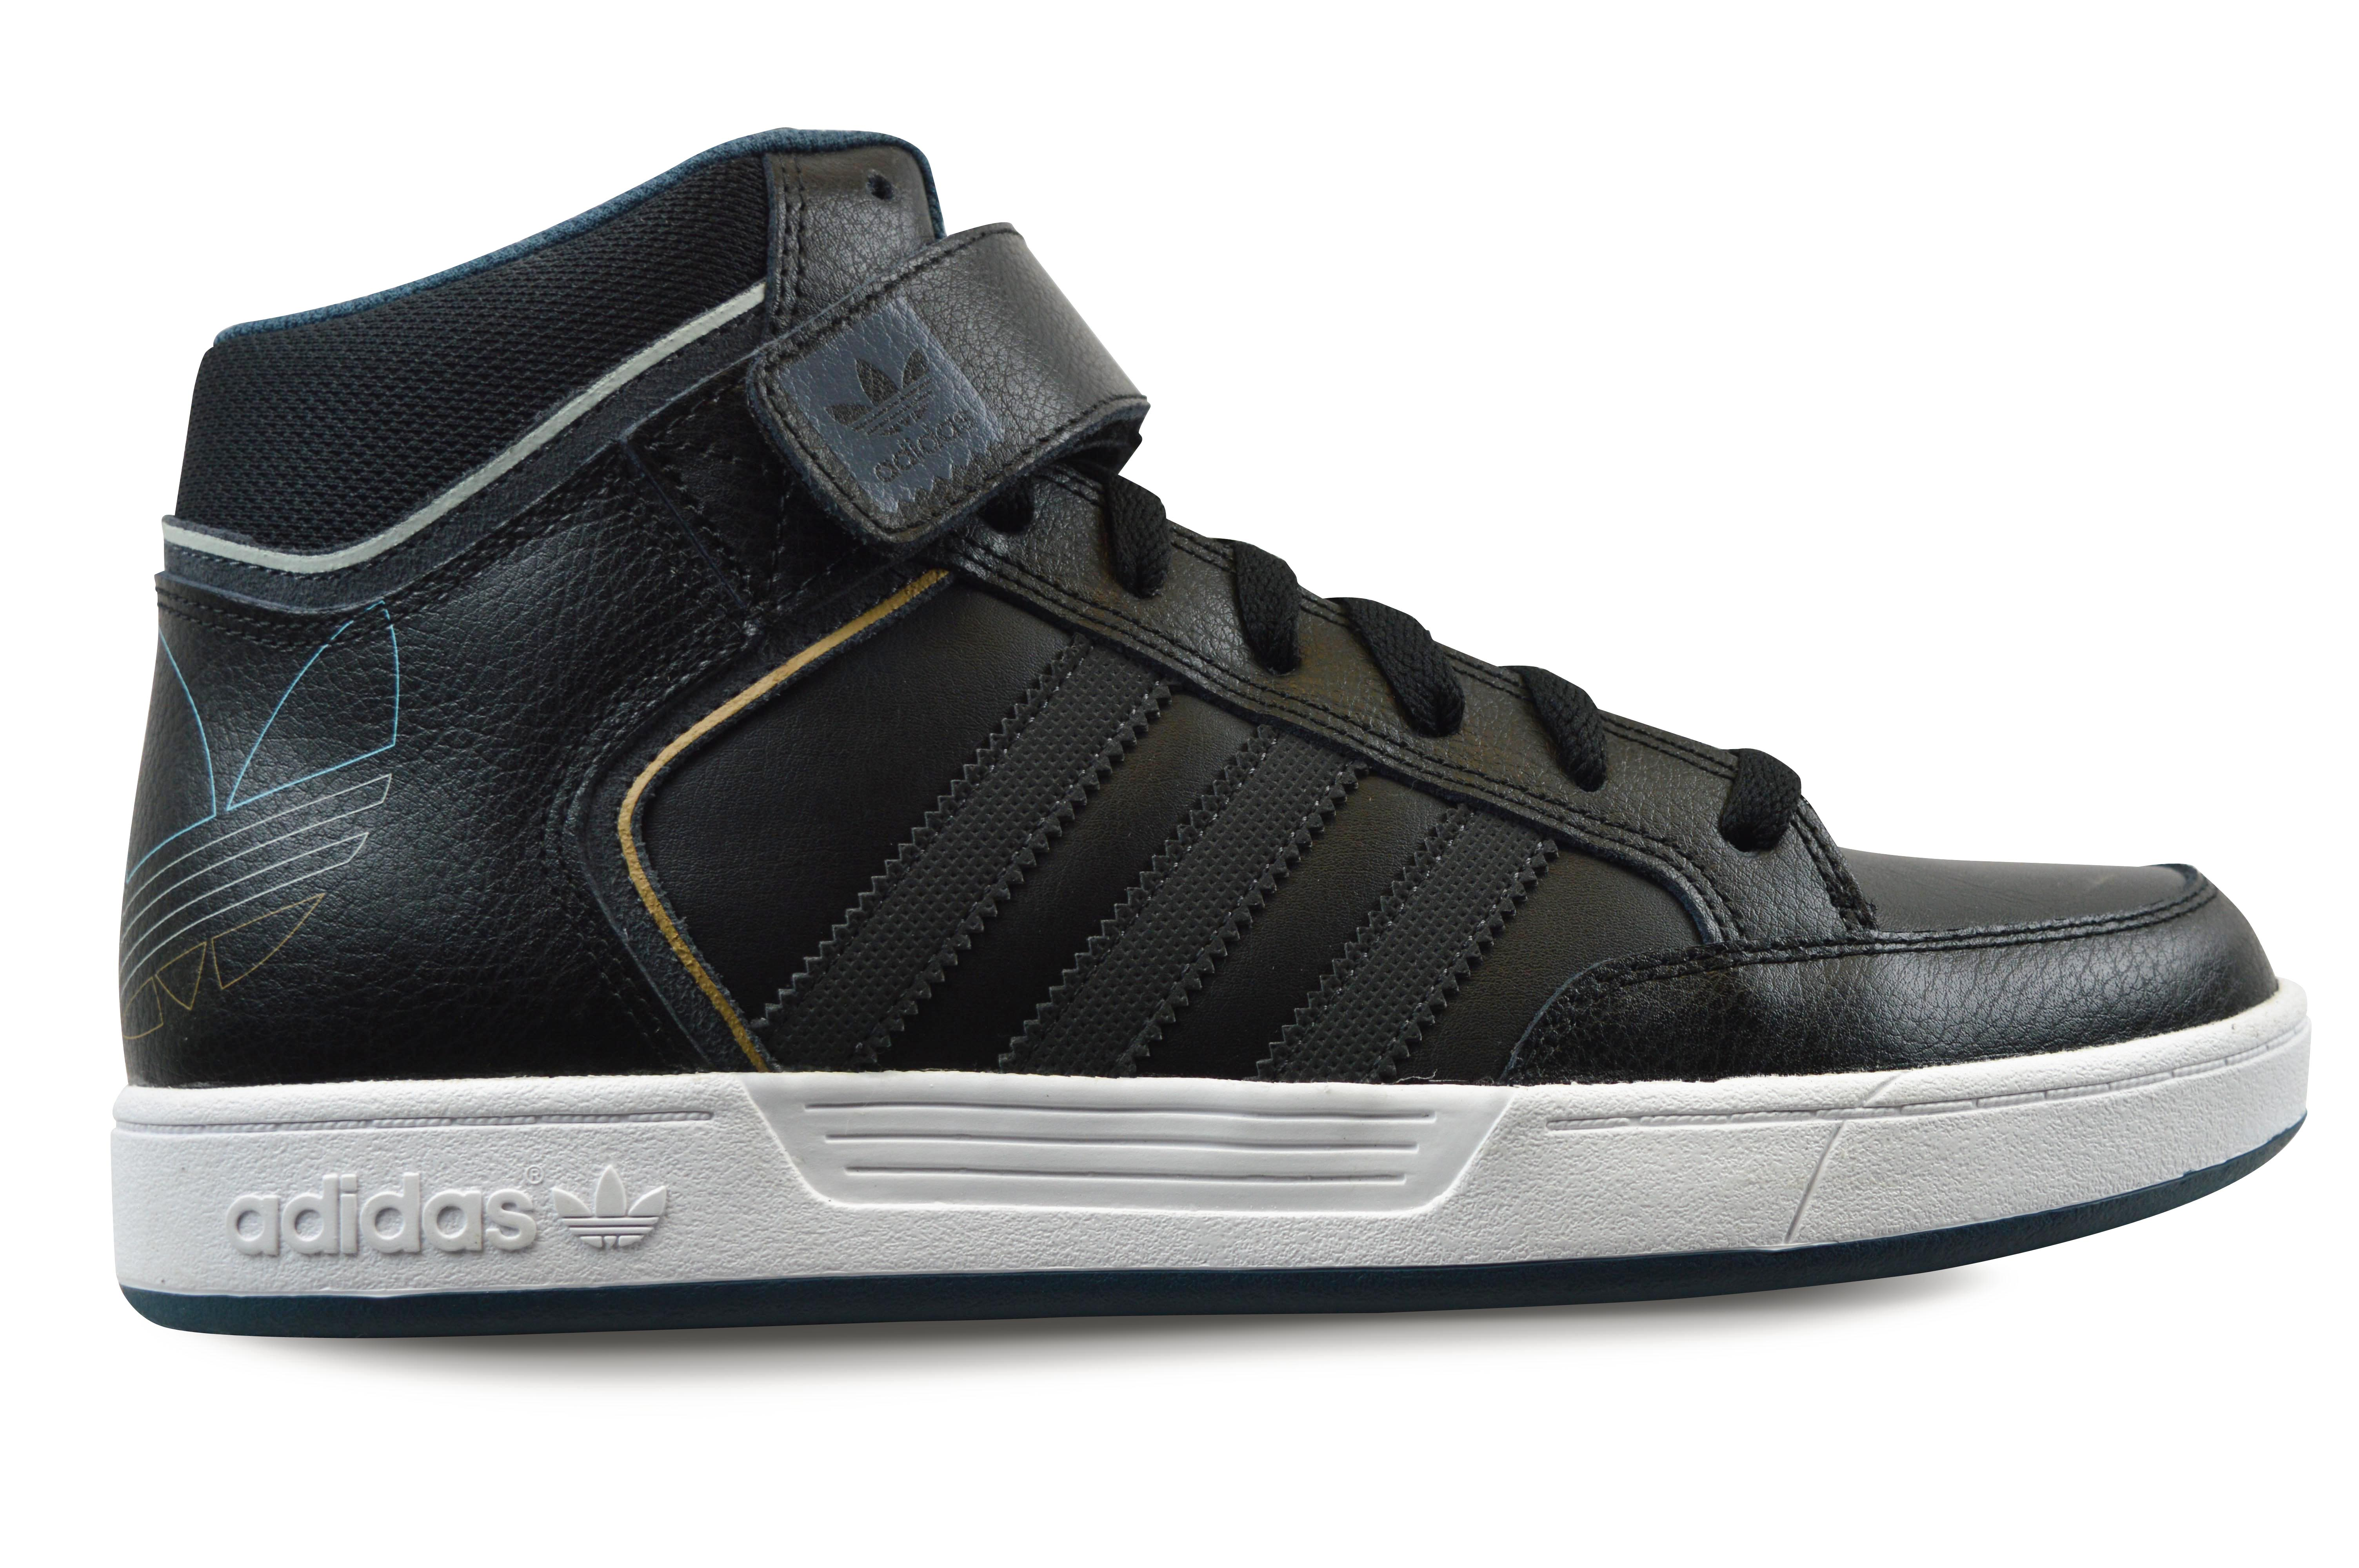 chaussures adidas montant homme